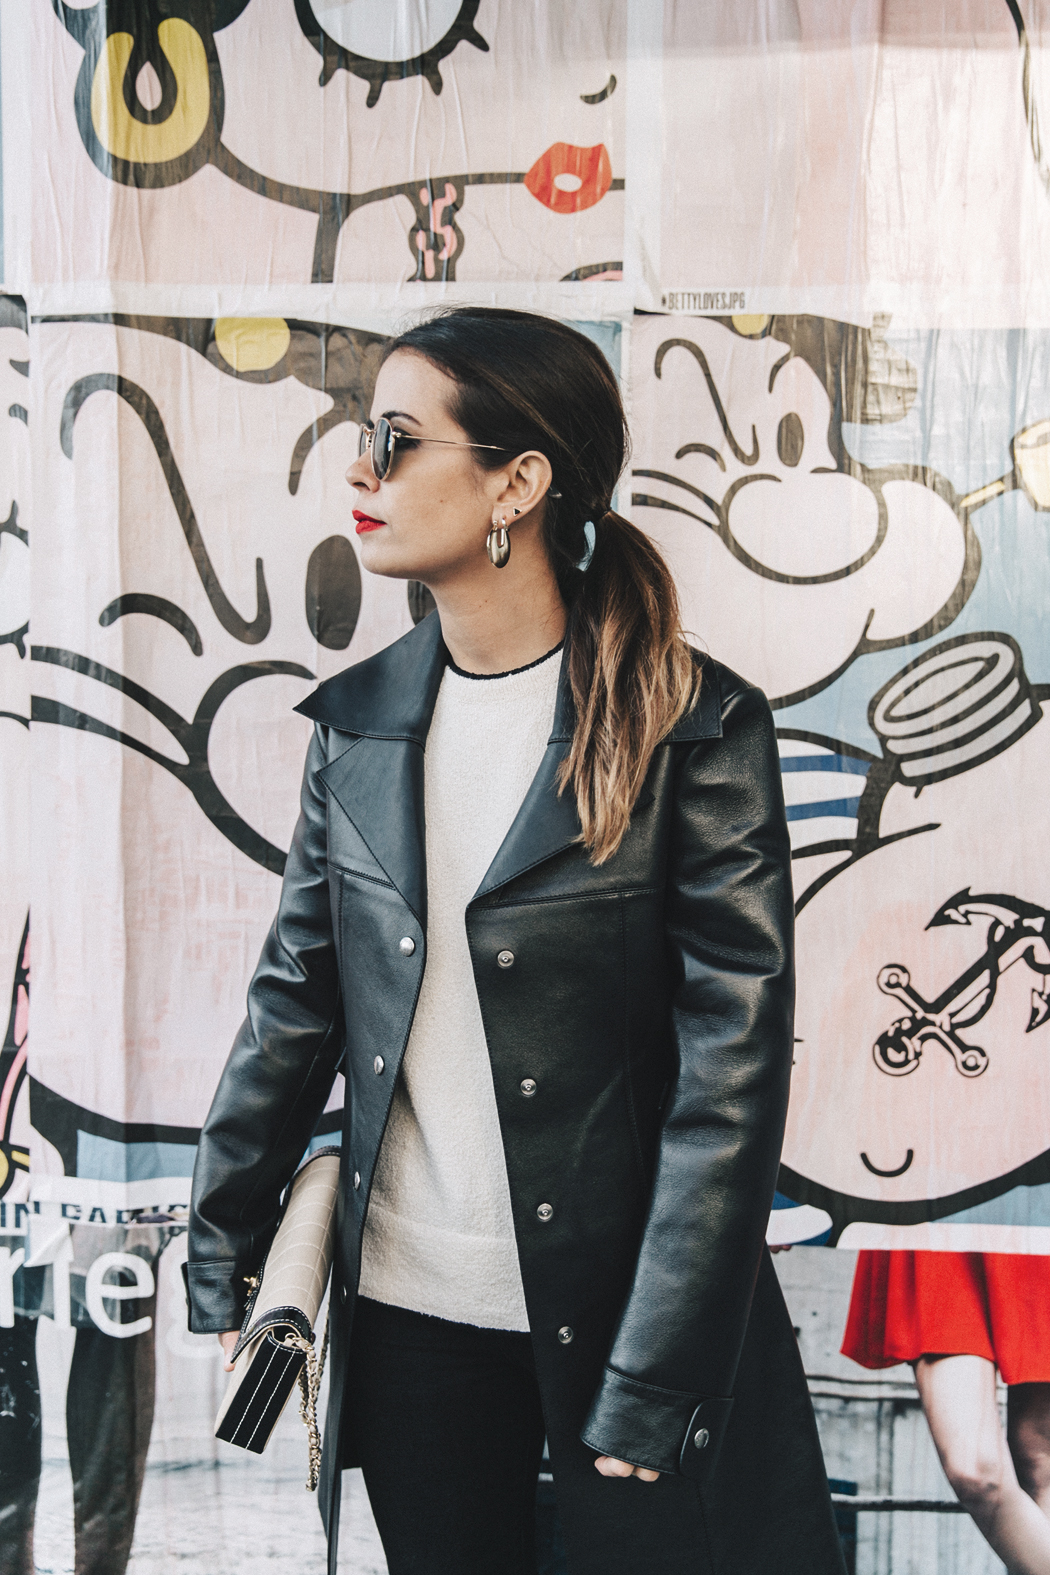 Vestiaire_Collective-Louis_Vuitton_Leather_Coat-Black_and_White-Chanel_Vintage-Celine_Boots-Street_Style-Outfit-PFW-9